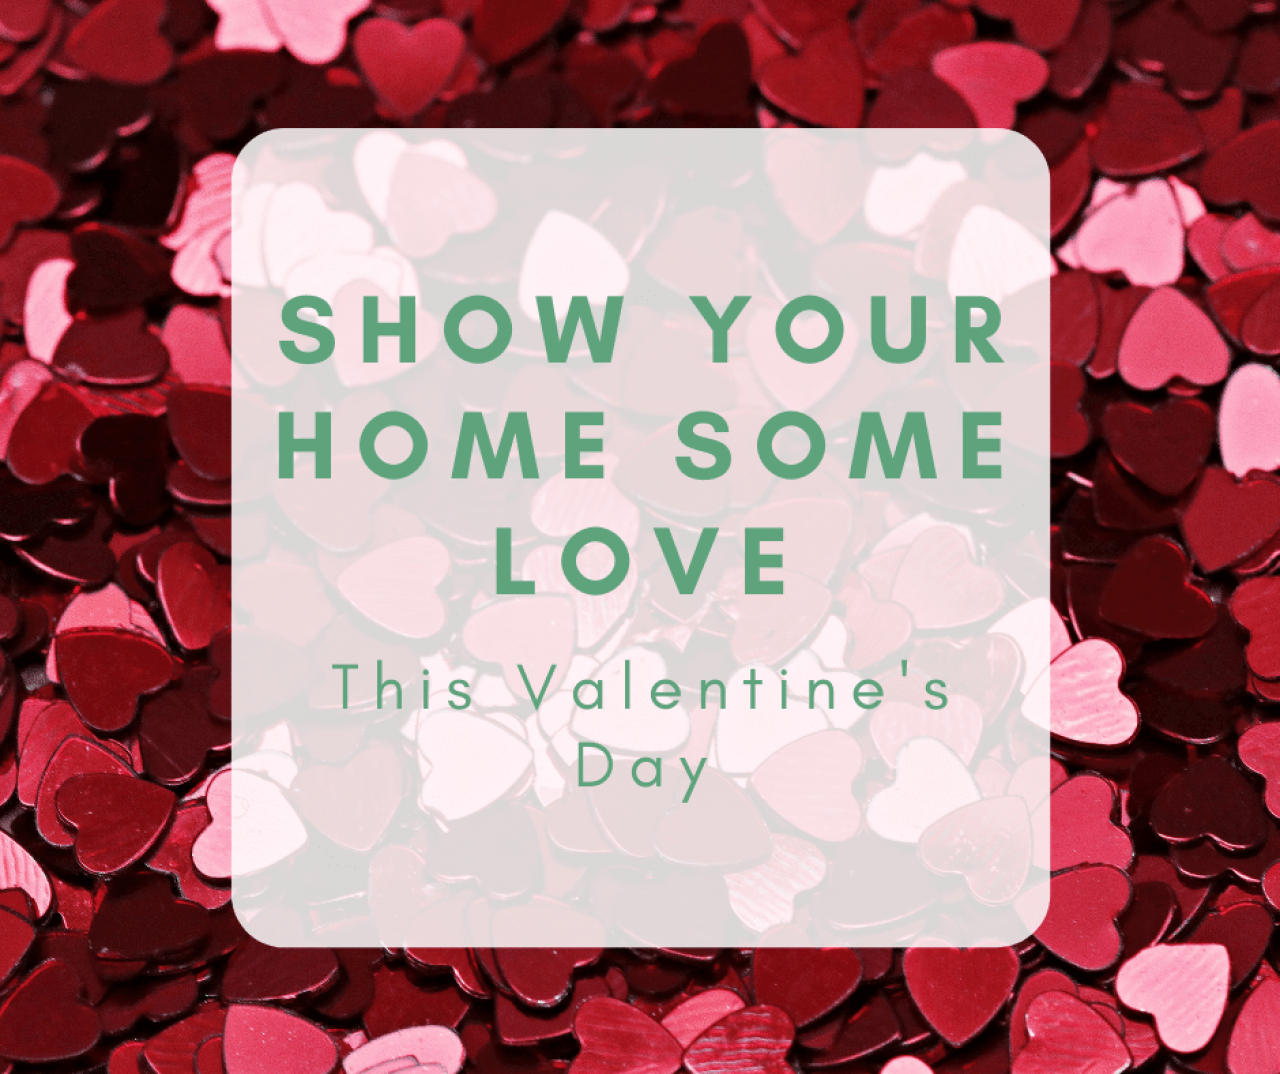 >Valentine's Love for your Home